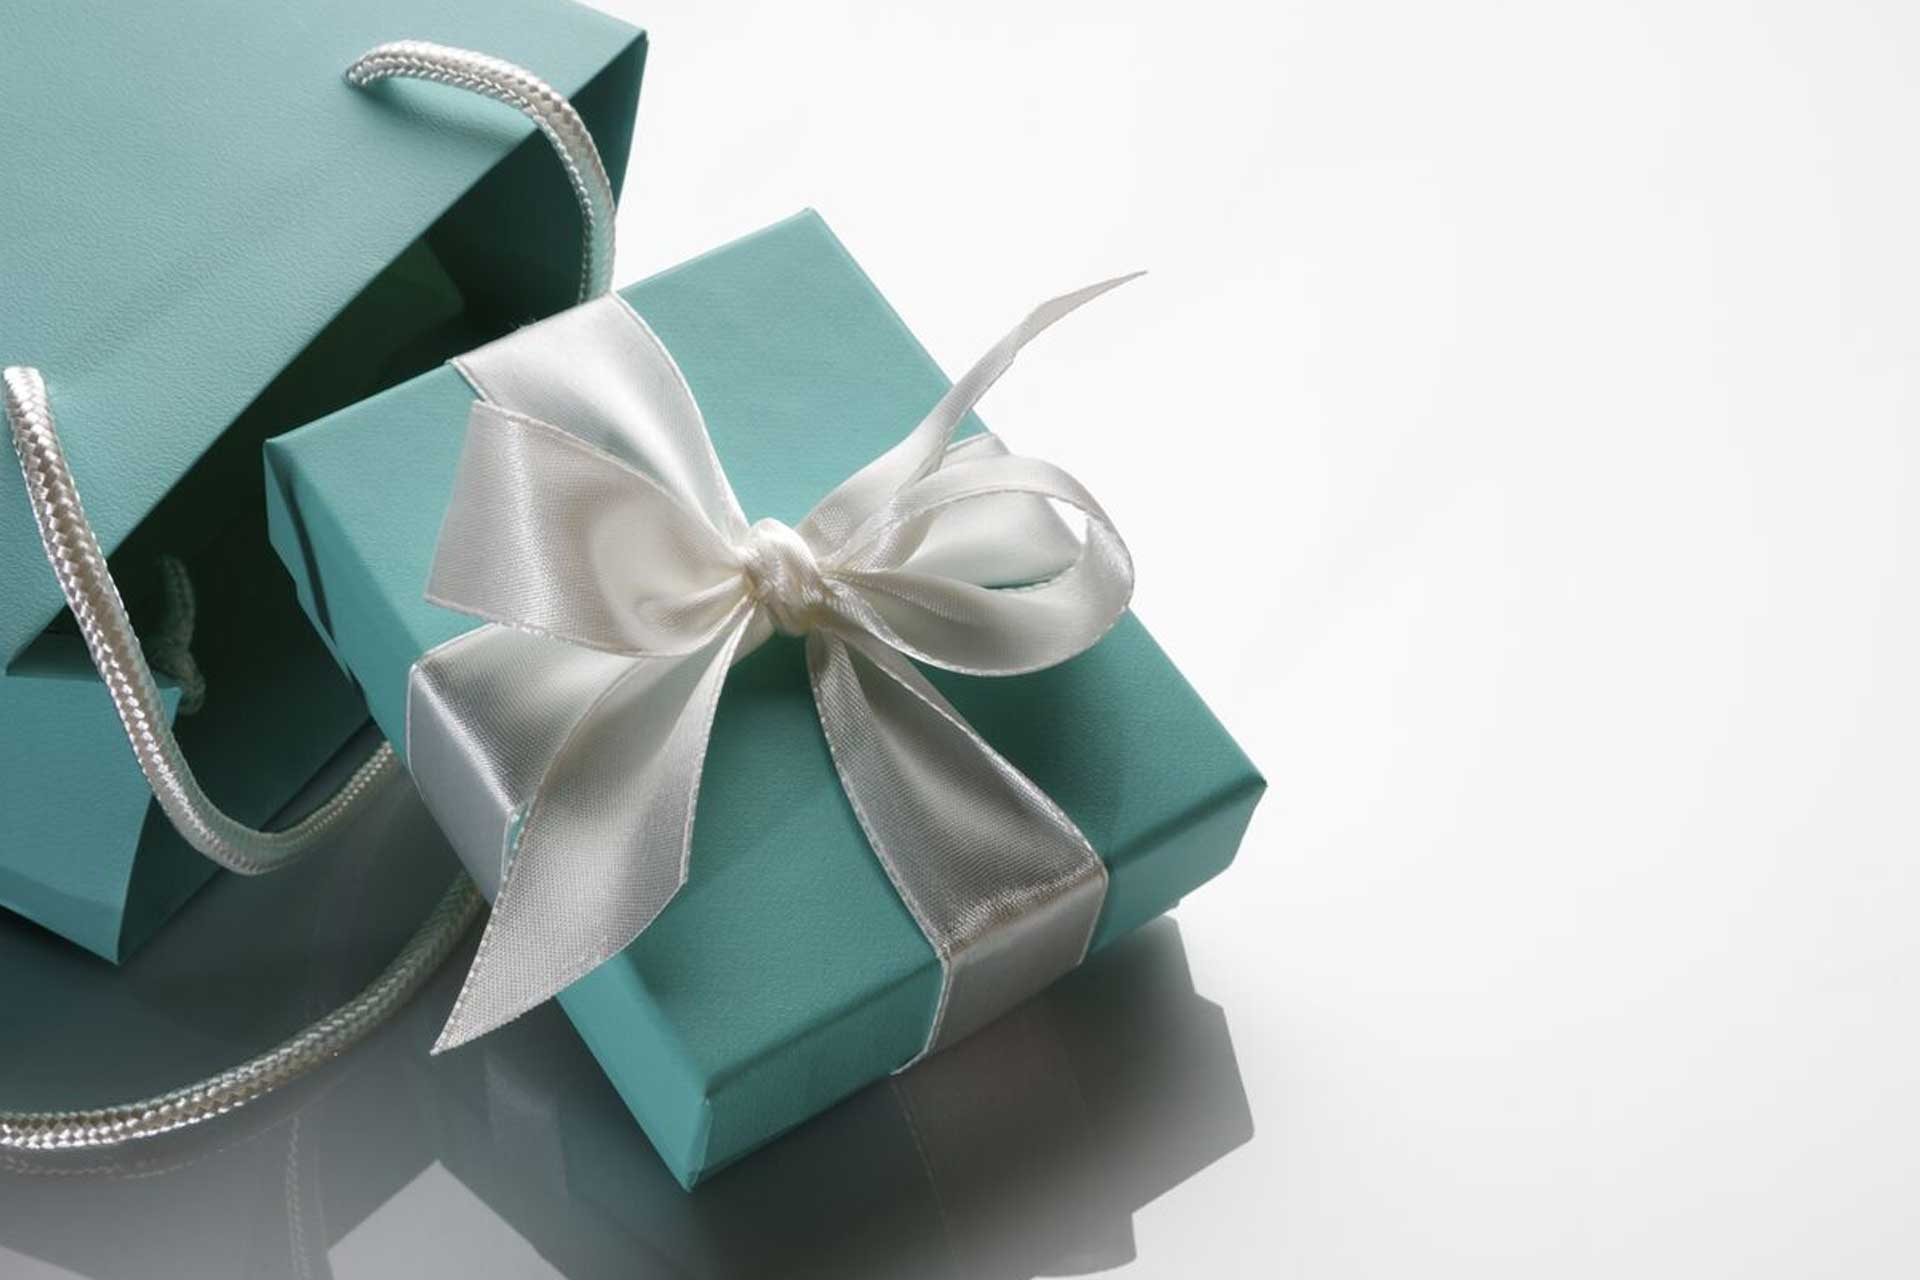 Shop And Purchase Gifts Specialty Gift & Gourmet Food Baskets Procurement Of Hard To Find Items (Luxury Watches, Hermes Purses etc.. Returns/Exchanges Holiday Shopping Gift Wrapping